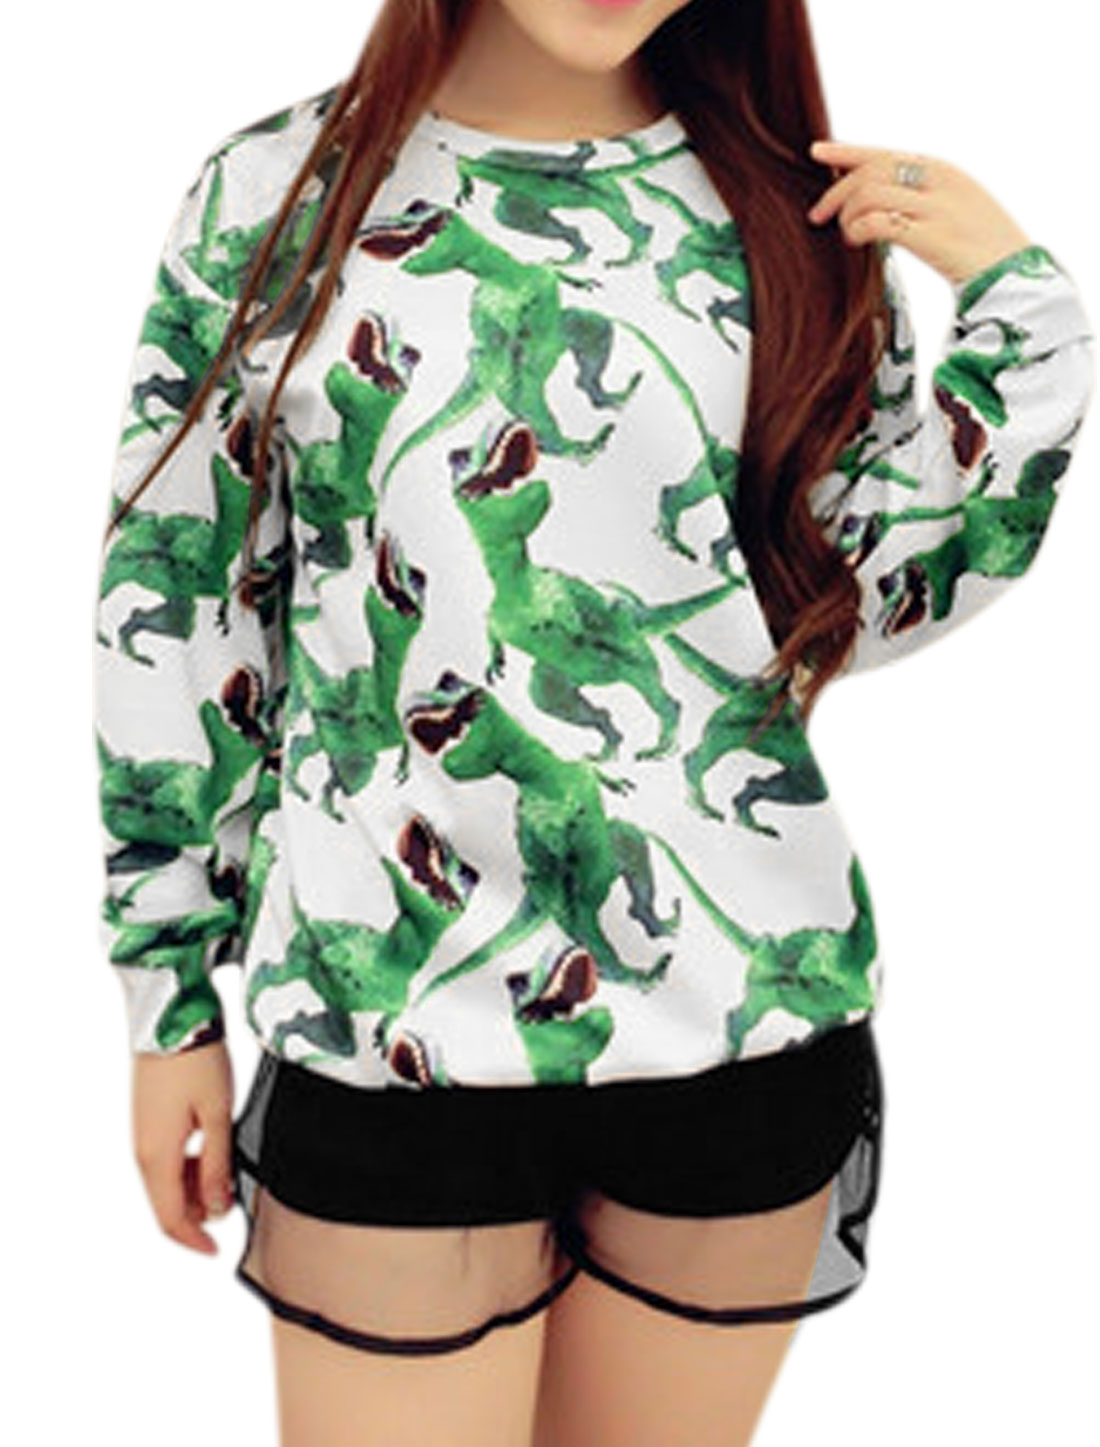 Lady Dinosaur Pattern Long Batwing Sleeve Leisure T-Shirt White Green XS